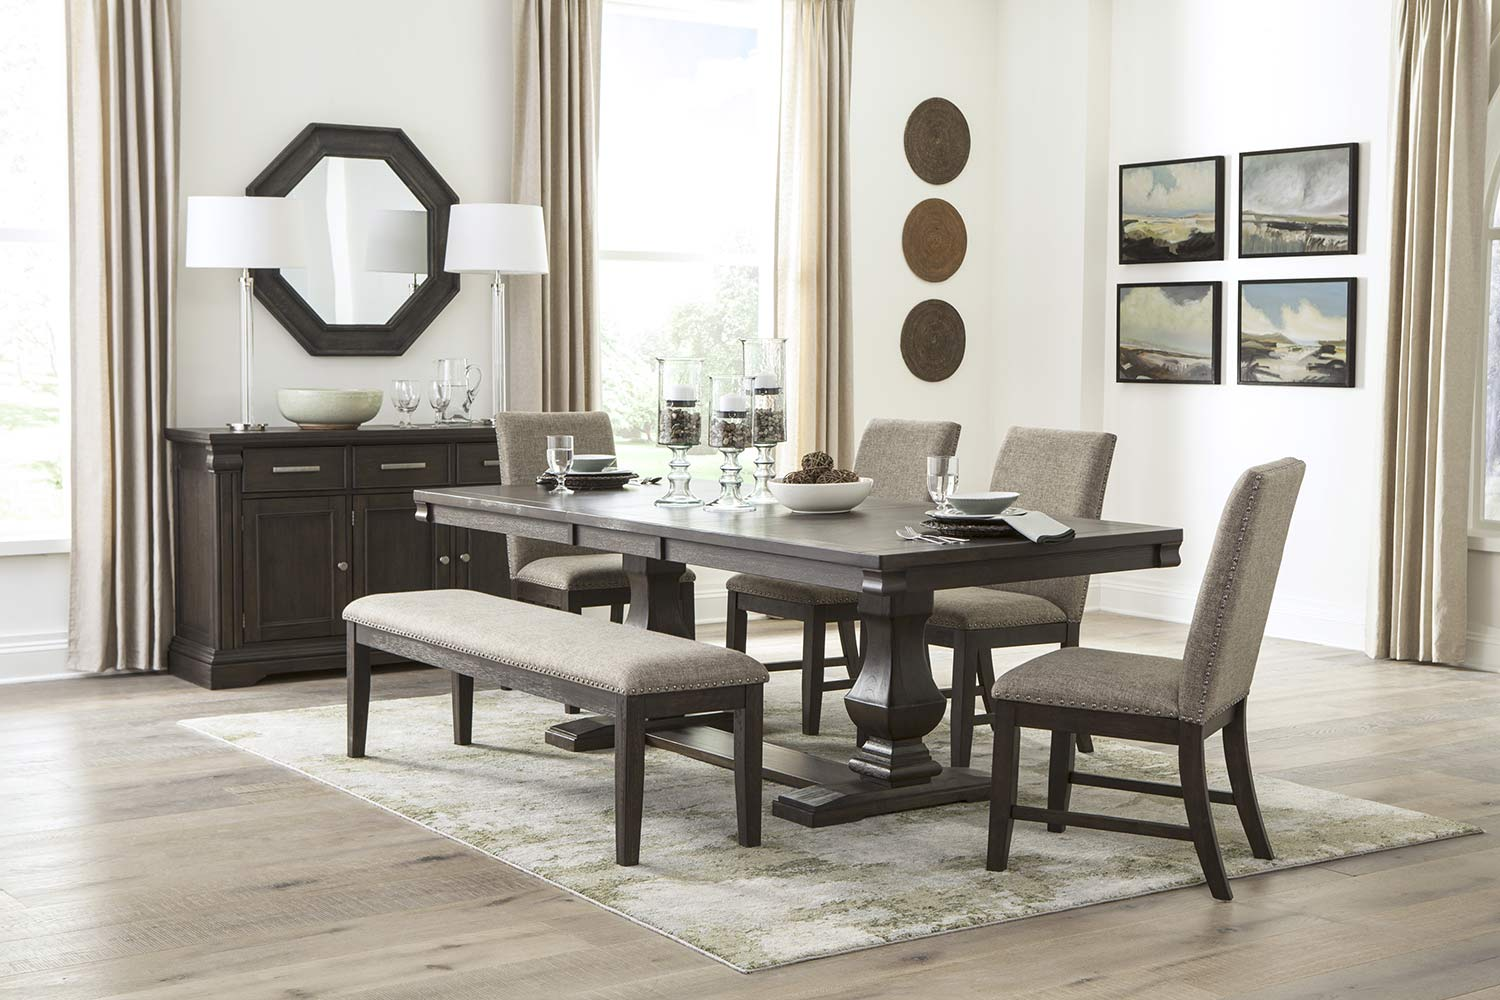 Homelegance Southlake Dining Set - Wire-brushed Rustic Brown